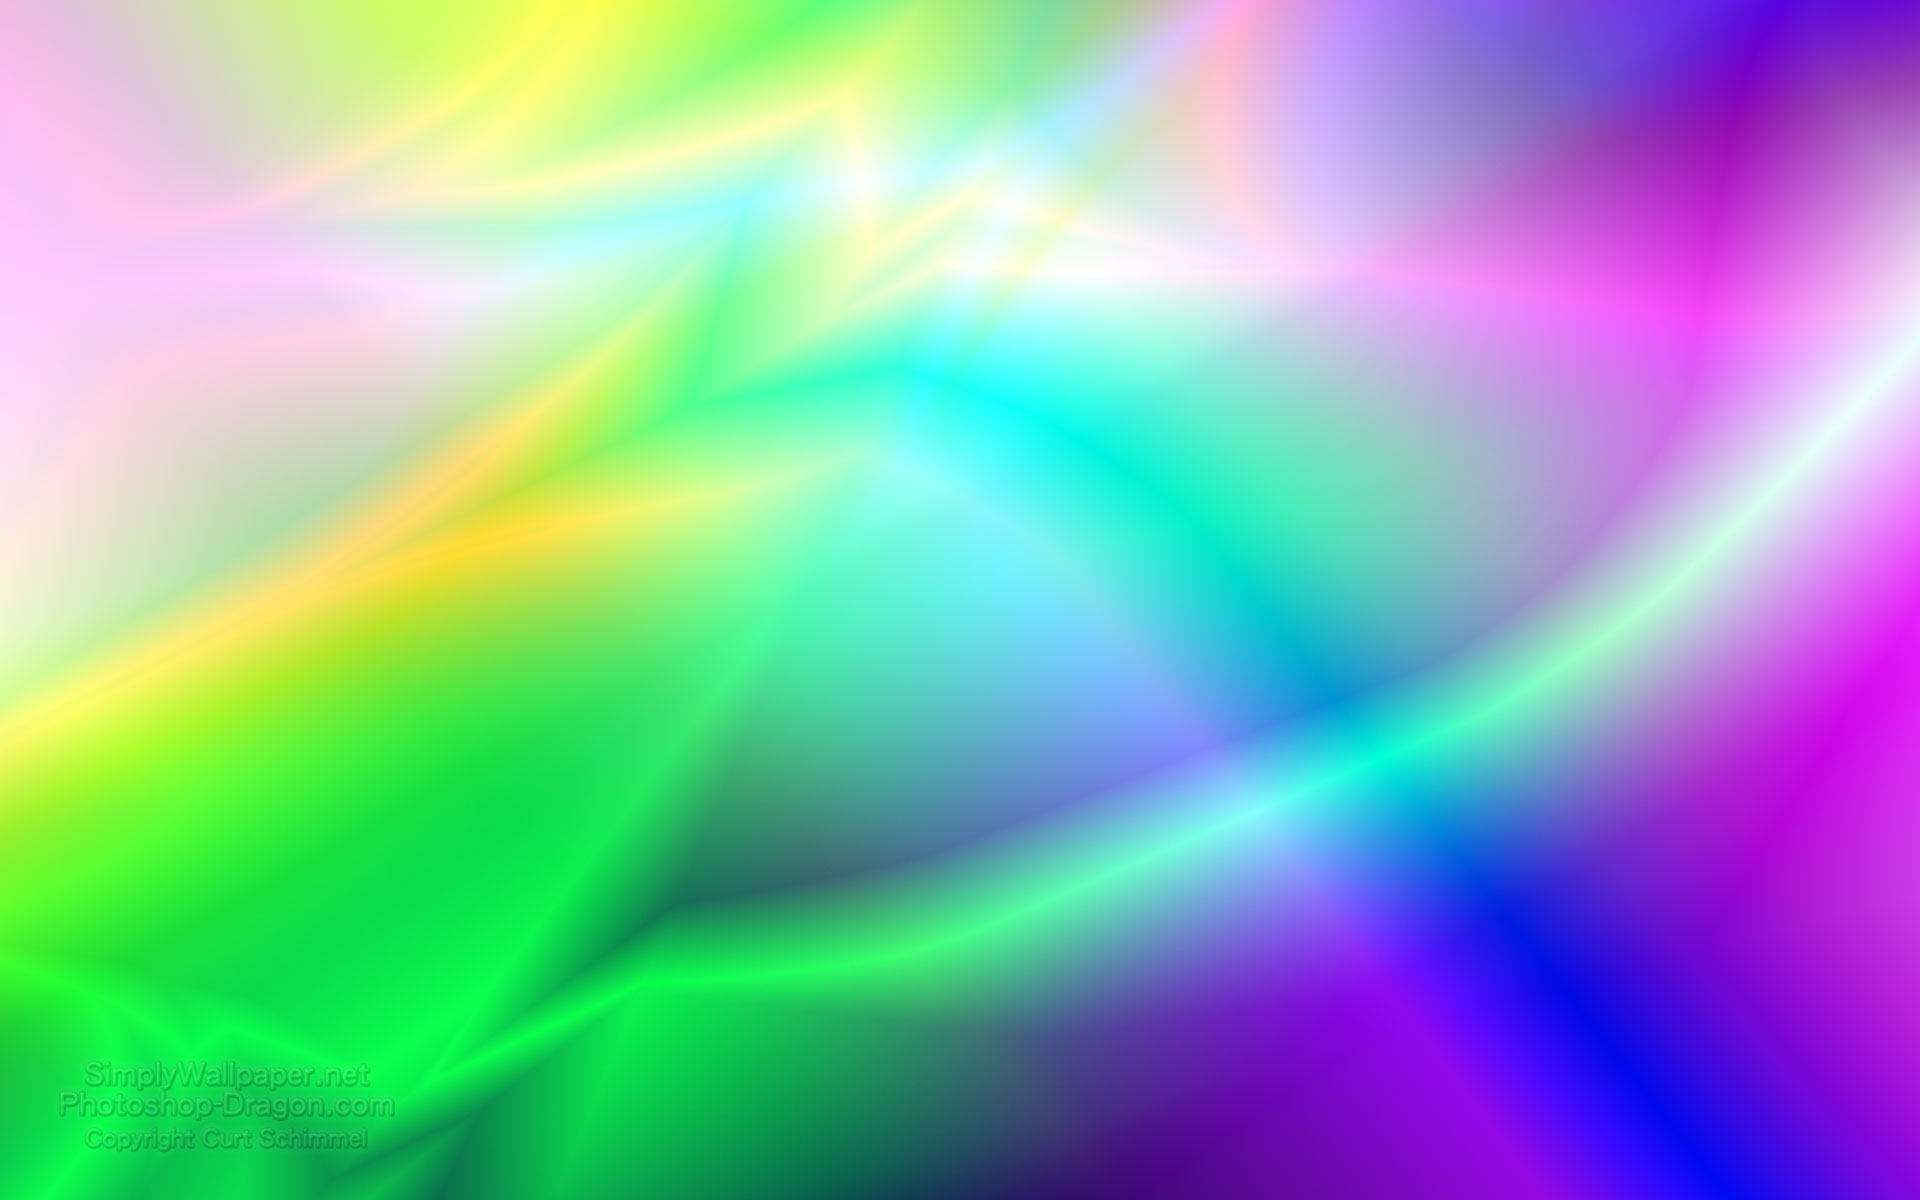 psychedelic backgrounds abstract pattern desktop abtract 1920x1200 1920x1200